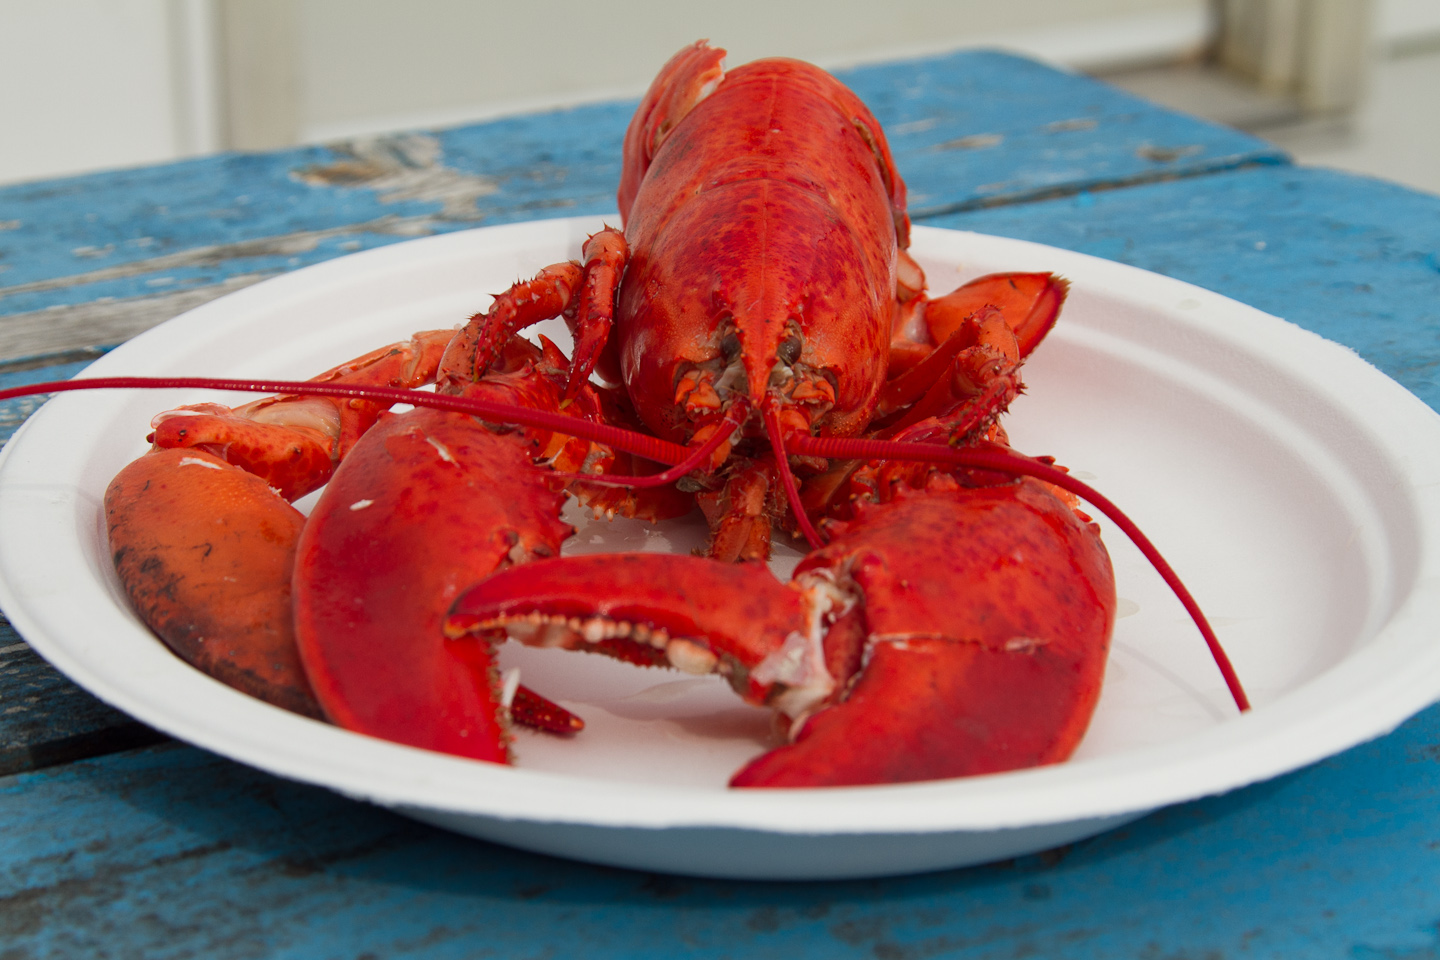 When our cooked crustaceans arrived on paper plates we practiced out photography skills proudly snapping pictures and then tore into the delicacies. & By~Lander~Sea Food Tales: Luscious Lobster In Nova Scotia